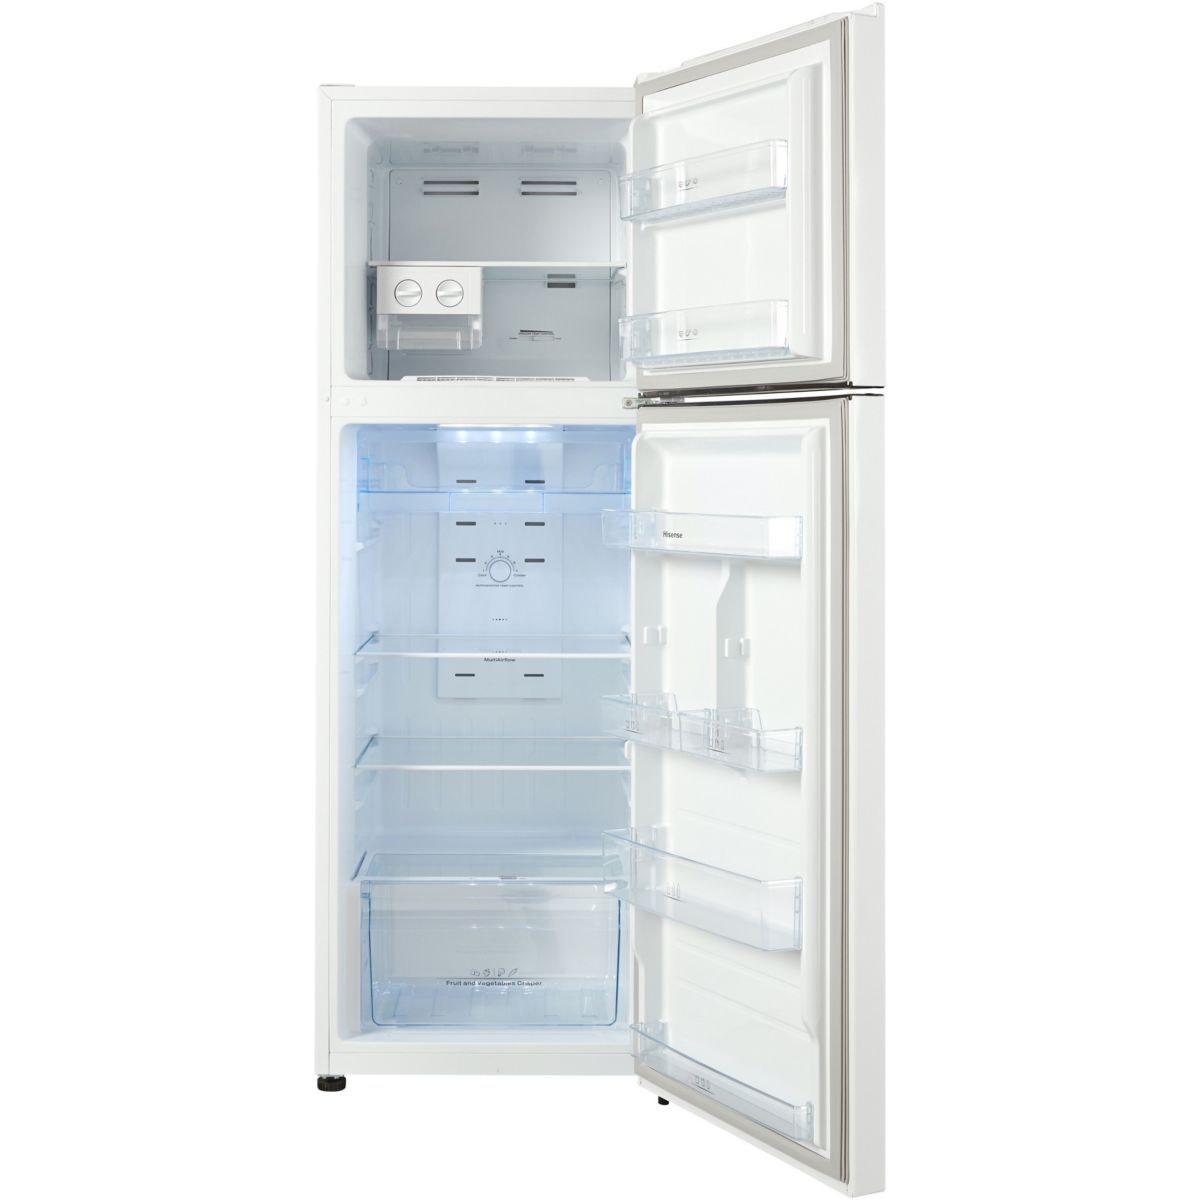 Refrigerateur 2 Portes Rt417n4dw1 Taille Taille Unique In 2019 Products Portes